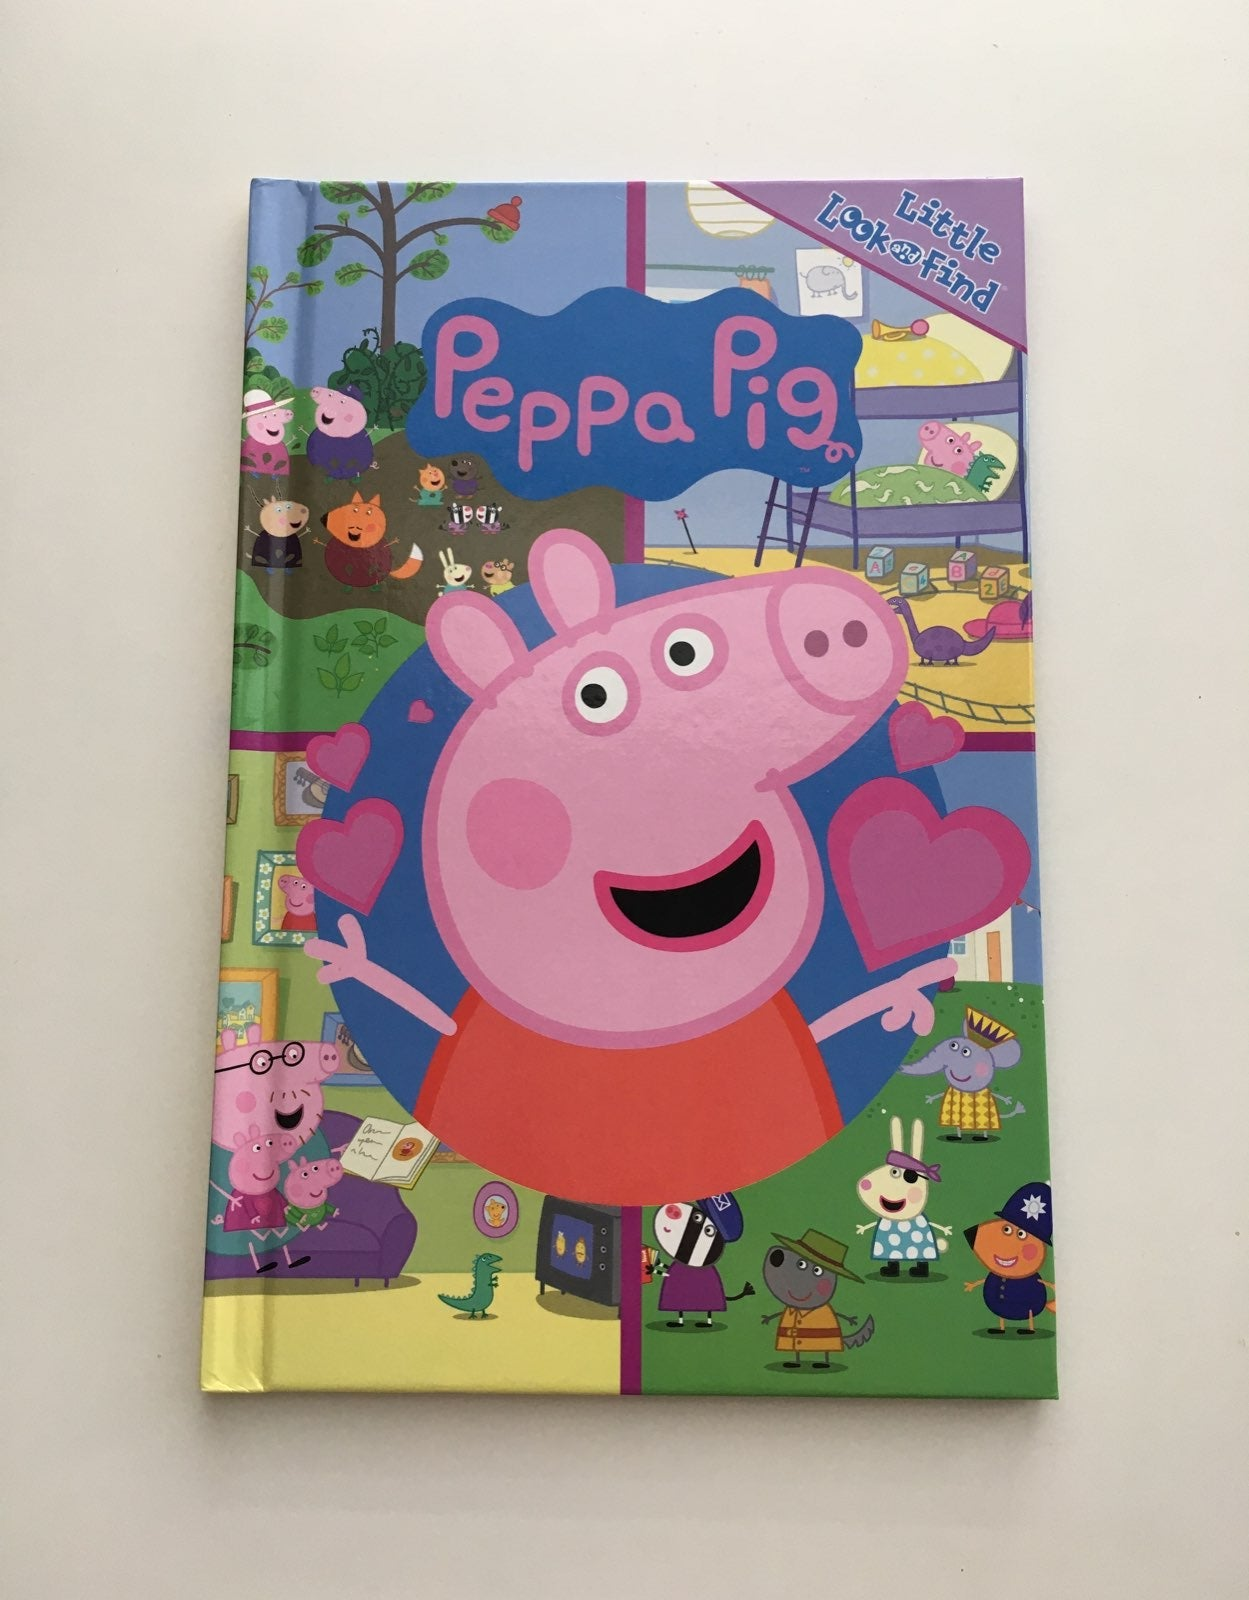 Peppa Pig Hard cover book